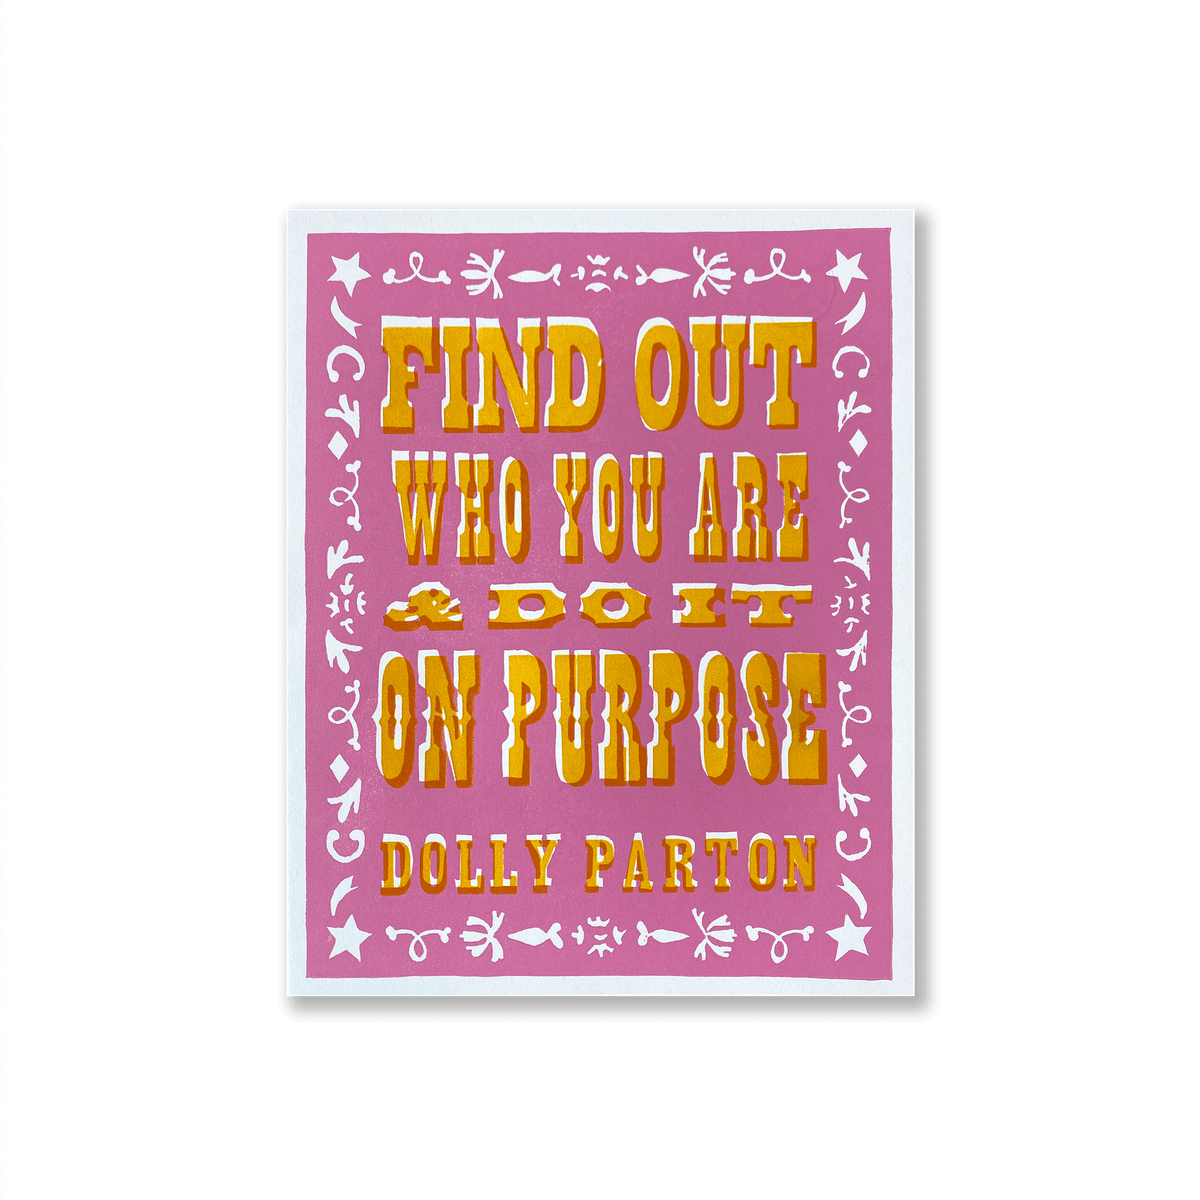 Dolly Parton Quote Print